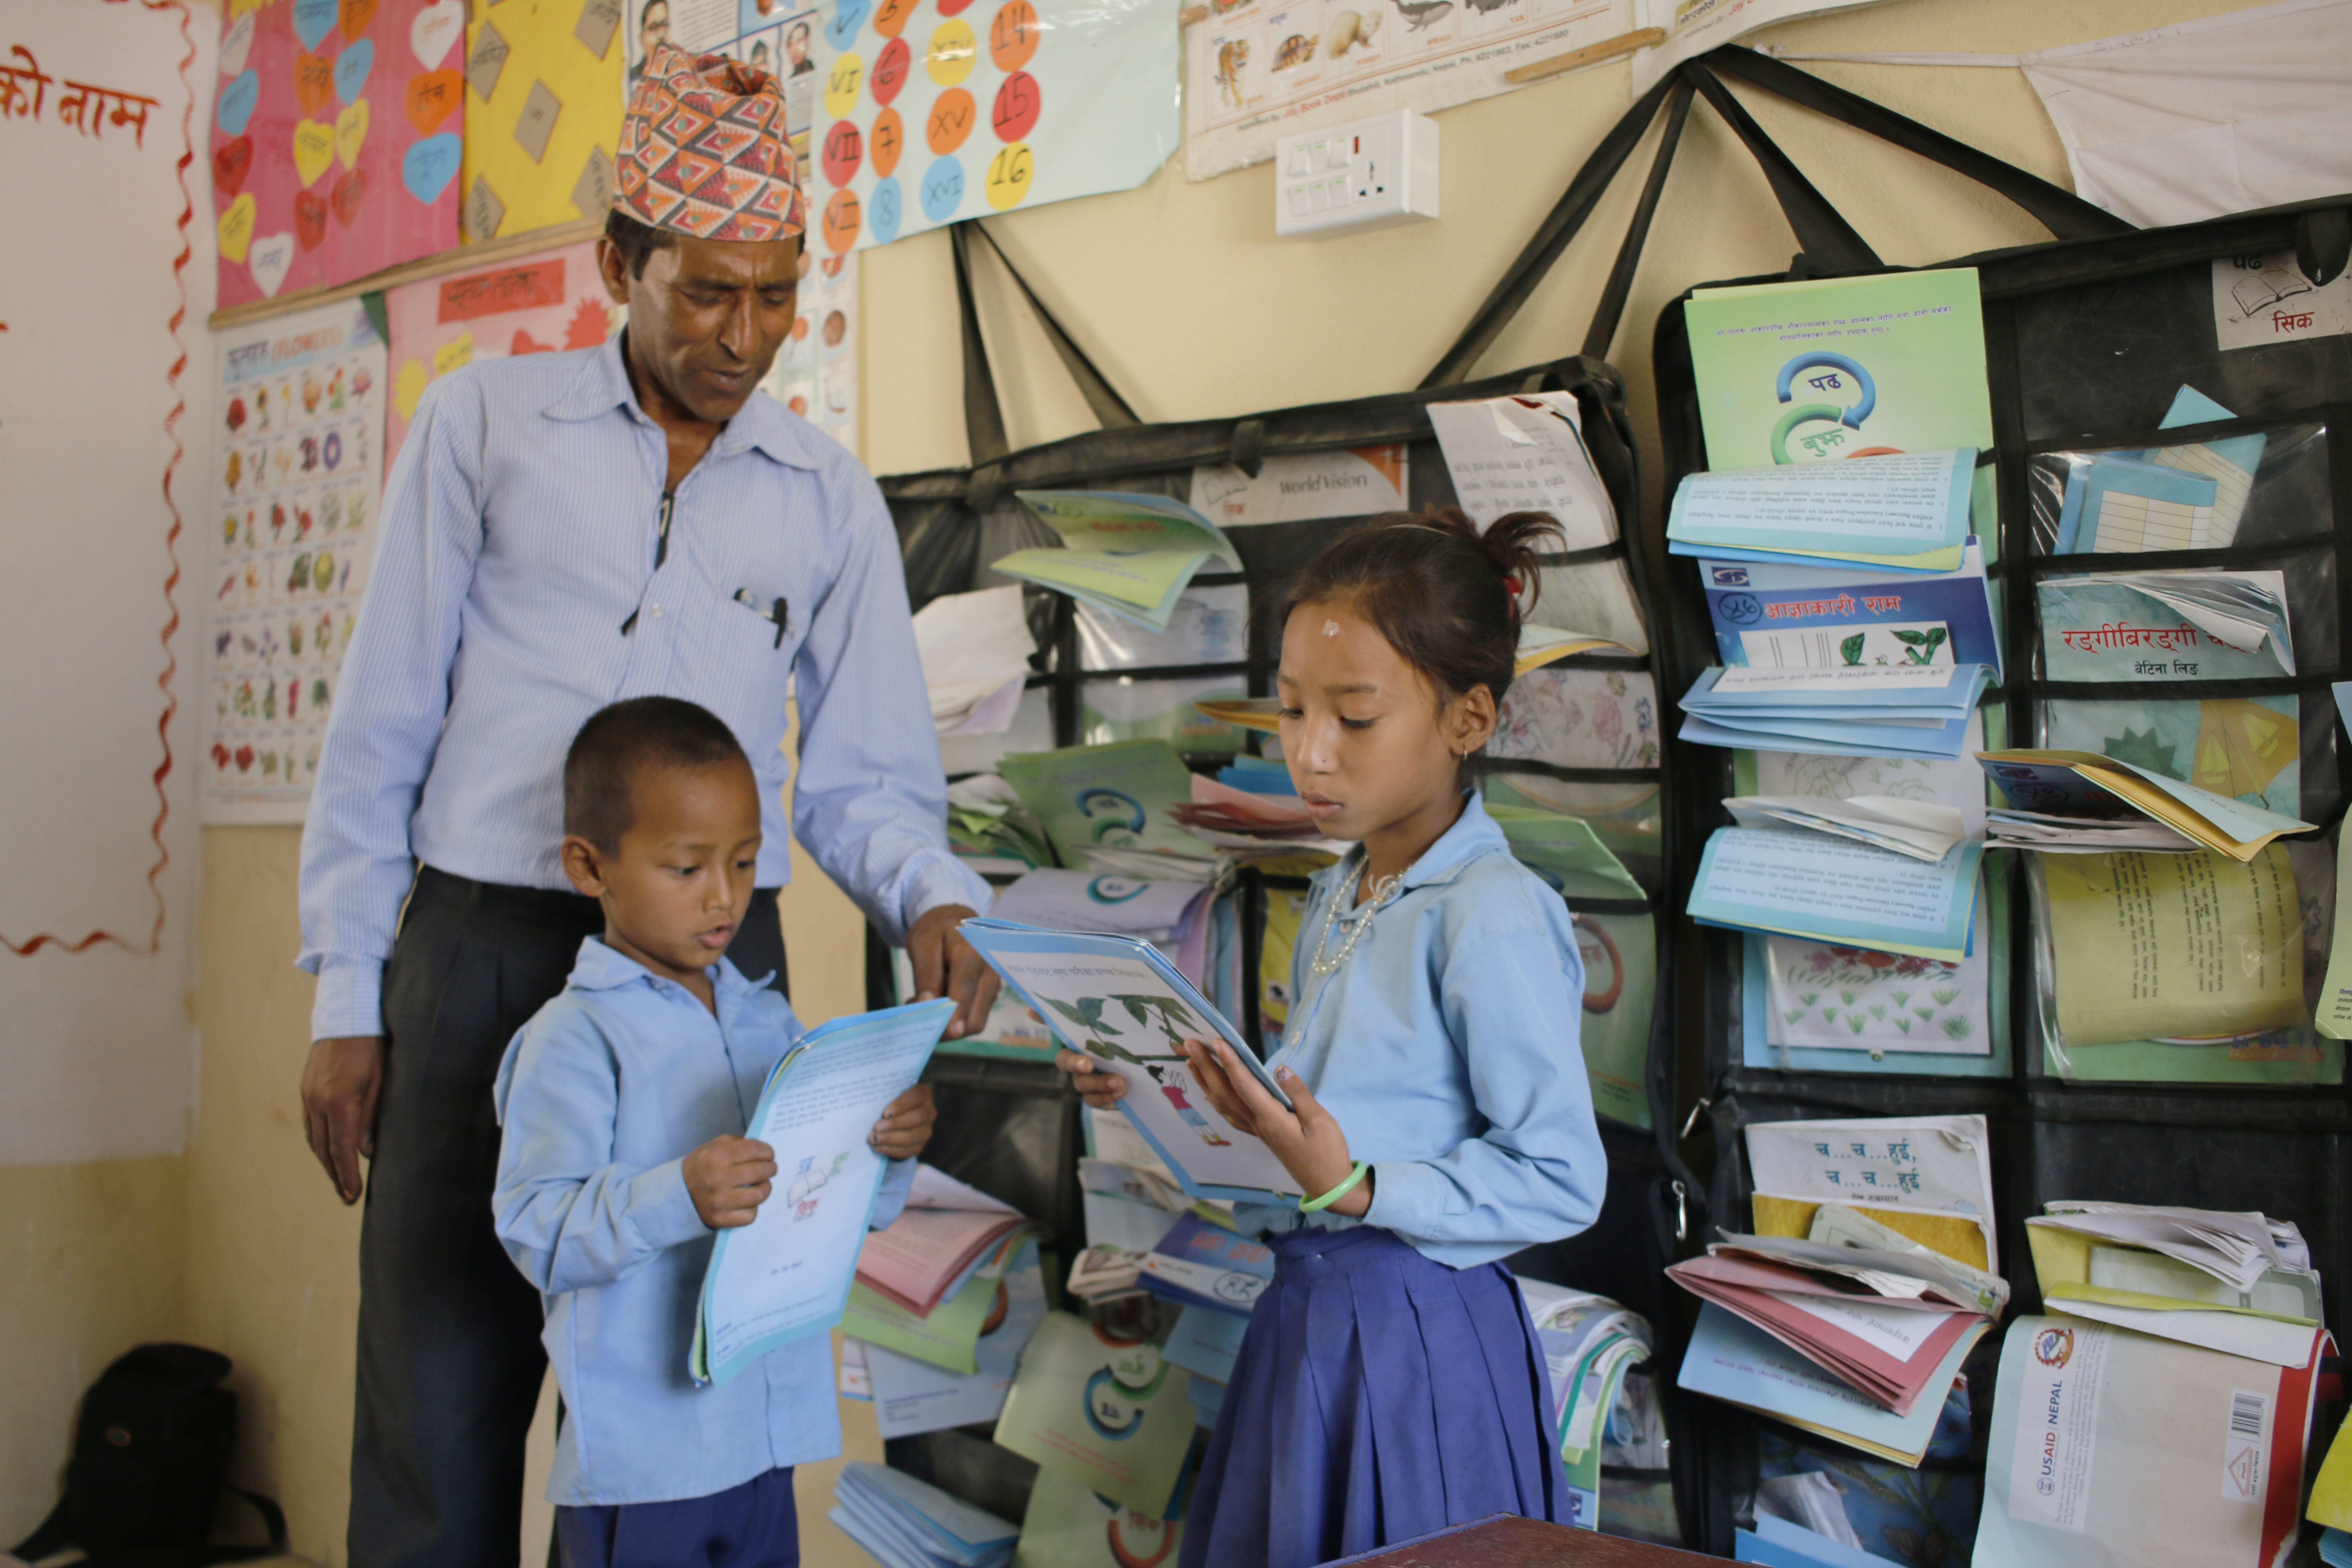 Nine year old Phadindra (boy) and eight year old Purna Kumari read books from the reading corner while Nil Prasad guides them.